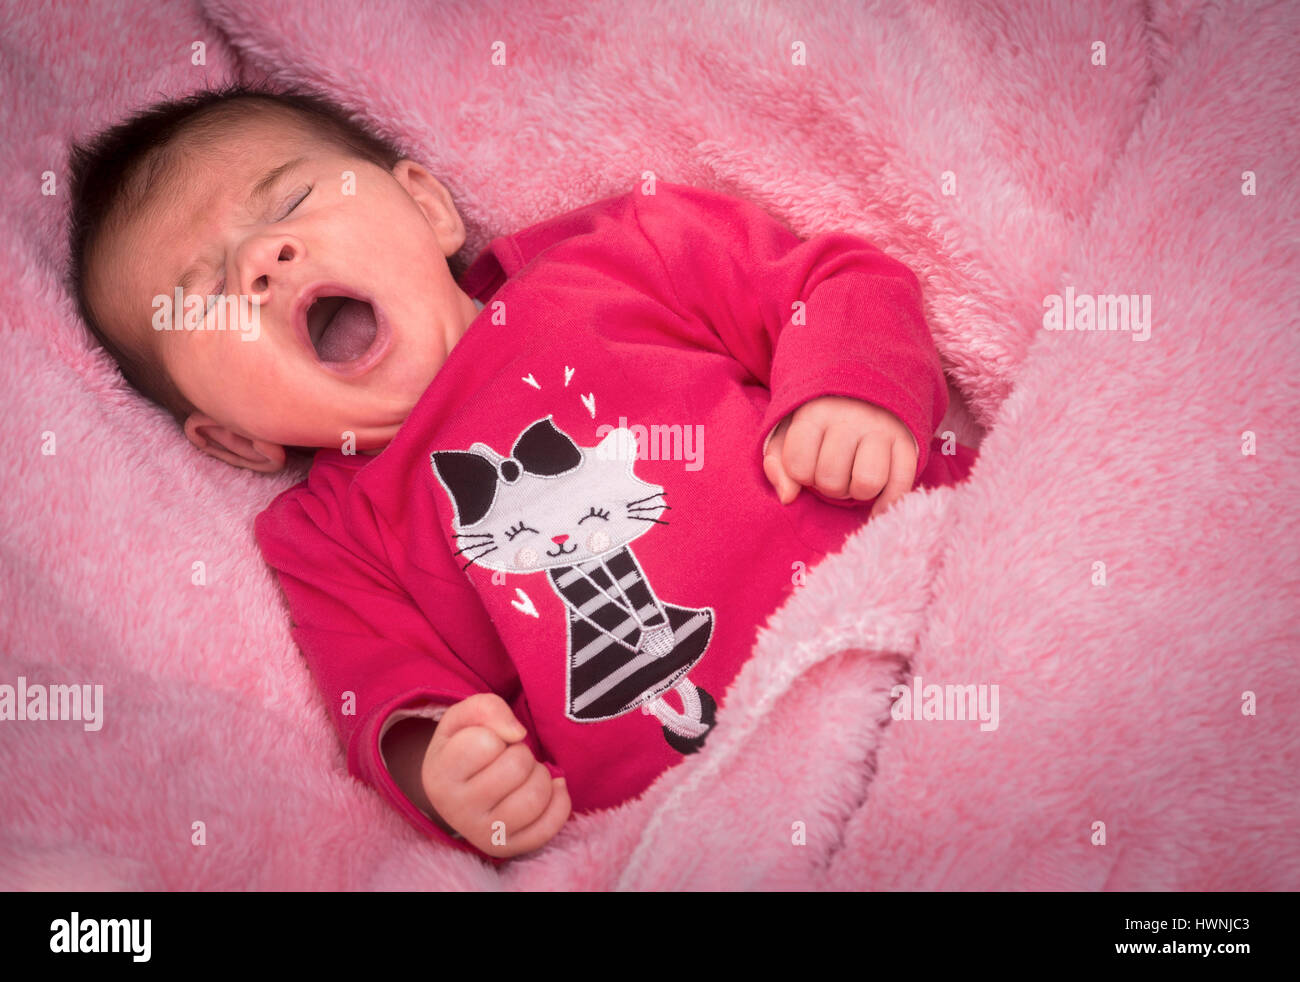 A newborn baby girl yawning on a pink blanket, certainly gazed lovingly by her parents who take advantage of the - Stock Image